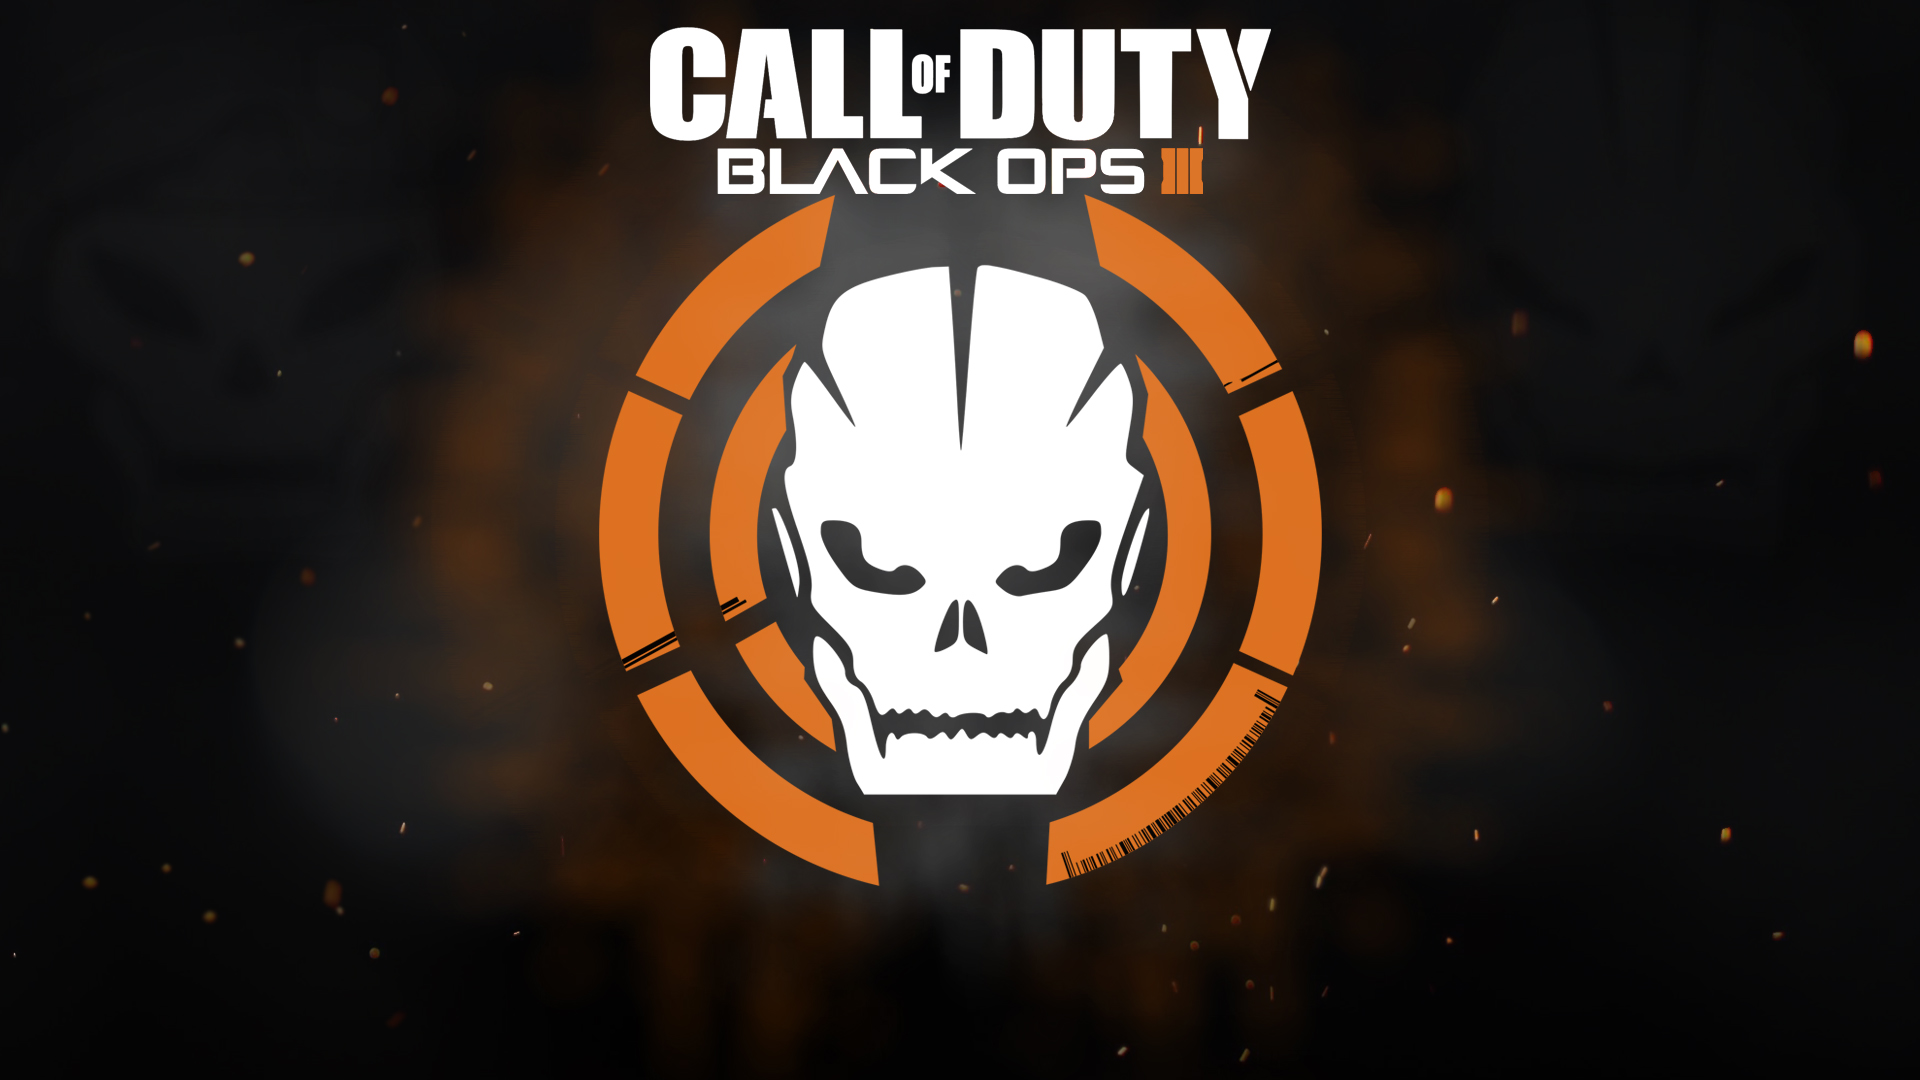 call of duty black ops 3 maps with Call Of Duty Black Ops Iii Wallpapers on Alftand further Prison Knife additionally File HL CharacterDesign DaisyFace furthermore David 'Phreak' Turley also Black Mage  Tactics A2.